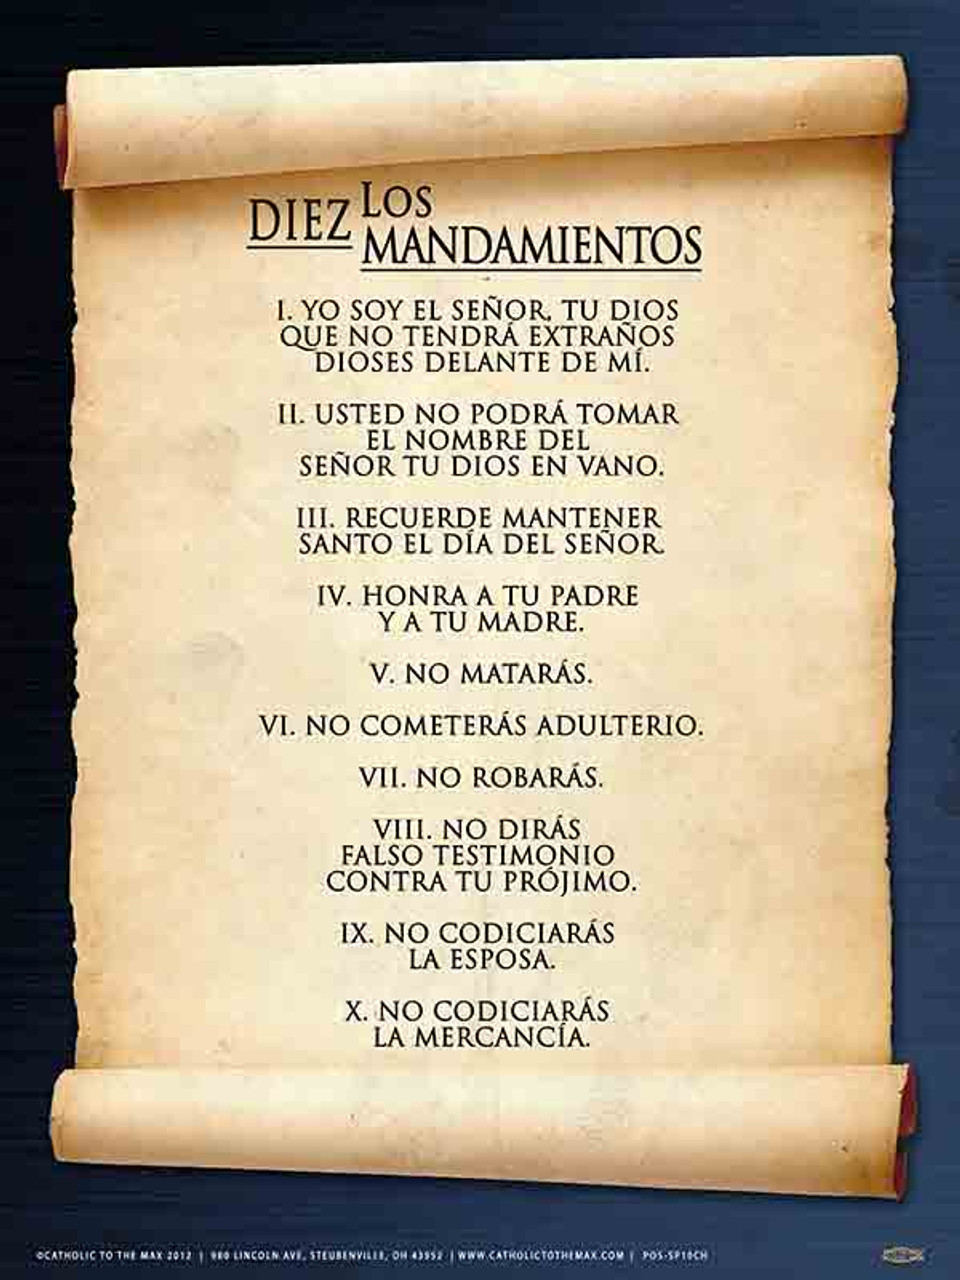 The 10 Most Beautiful Women In The World According To Science: Spanish 10 Commandments Poster